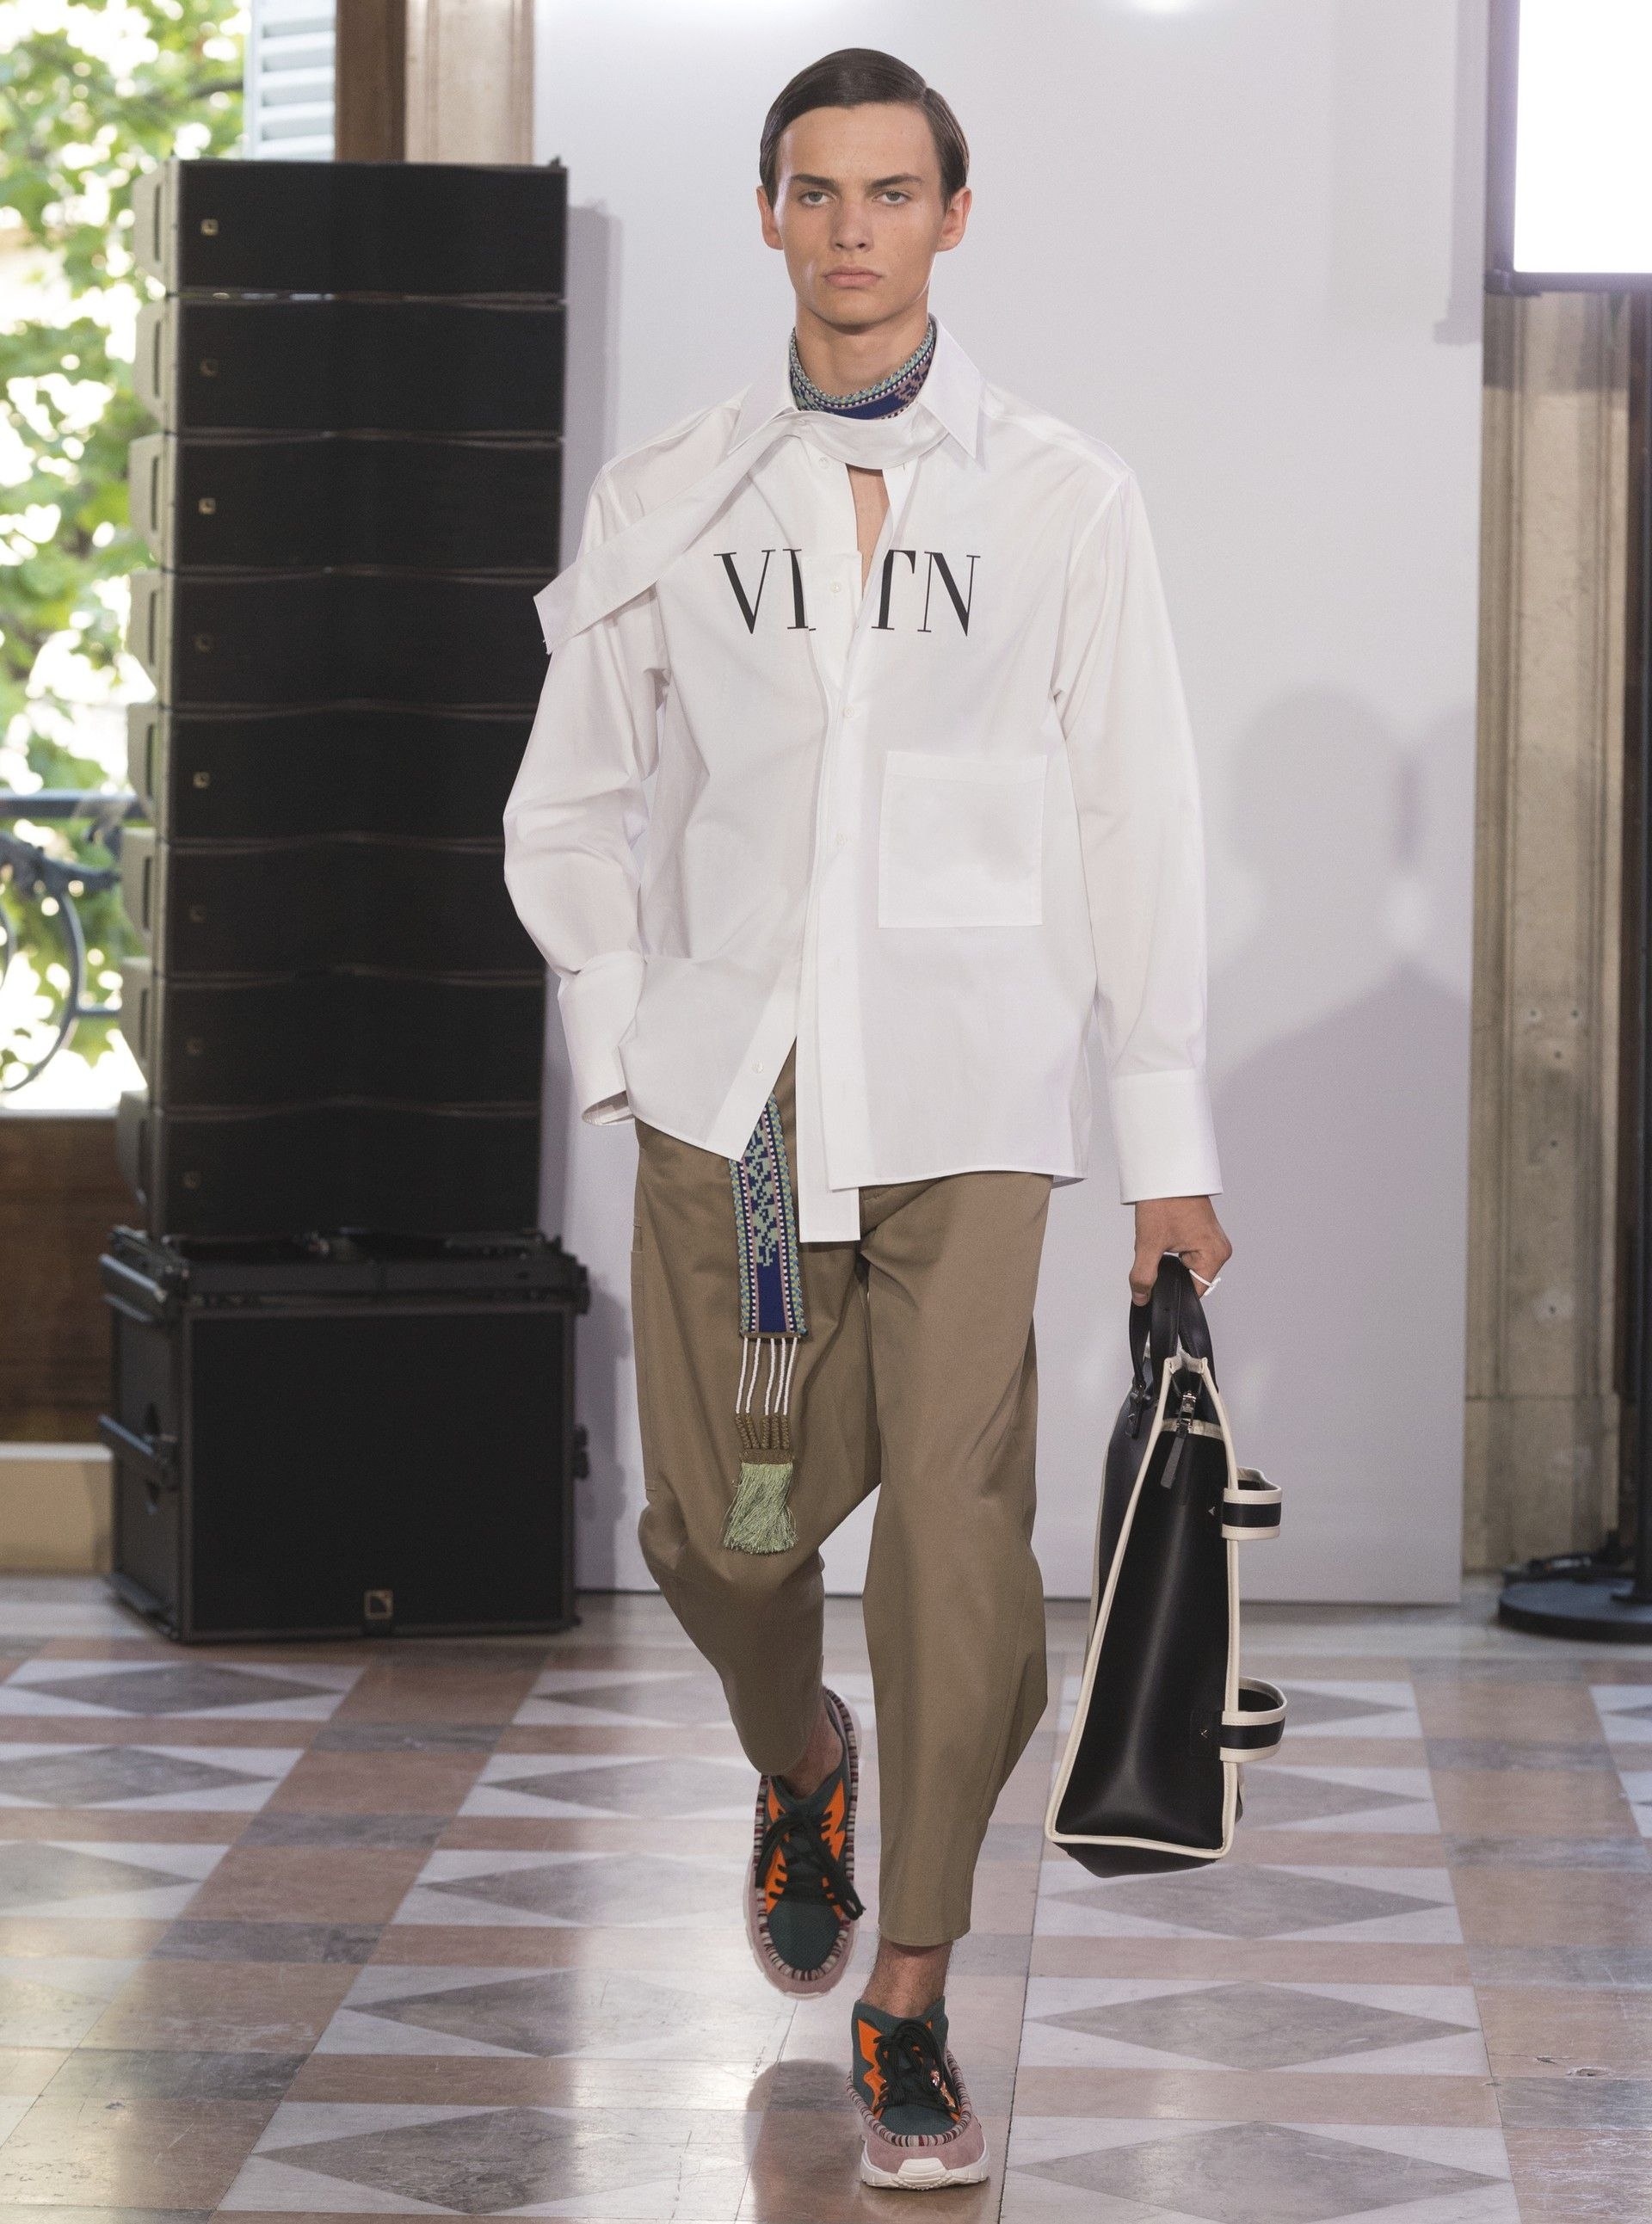 Discover the Valentino Spring/Summer 2018 collection for men by Pierpaolo  Piccioli.